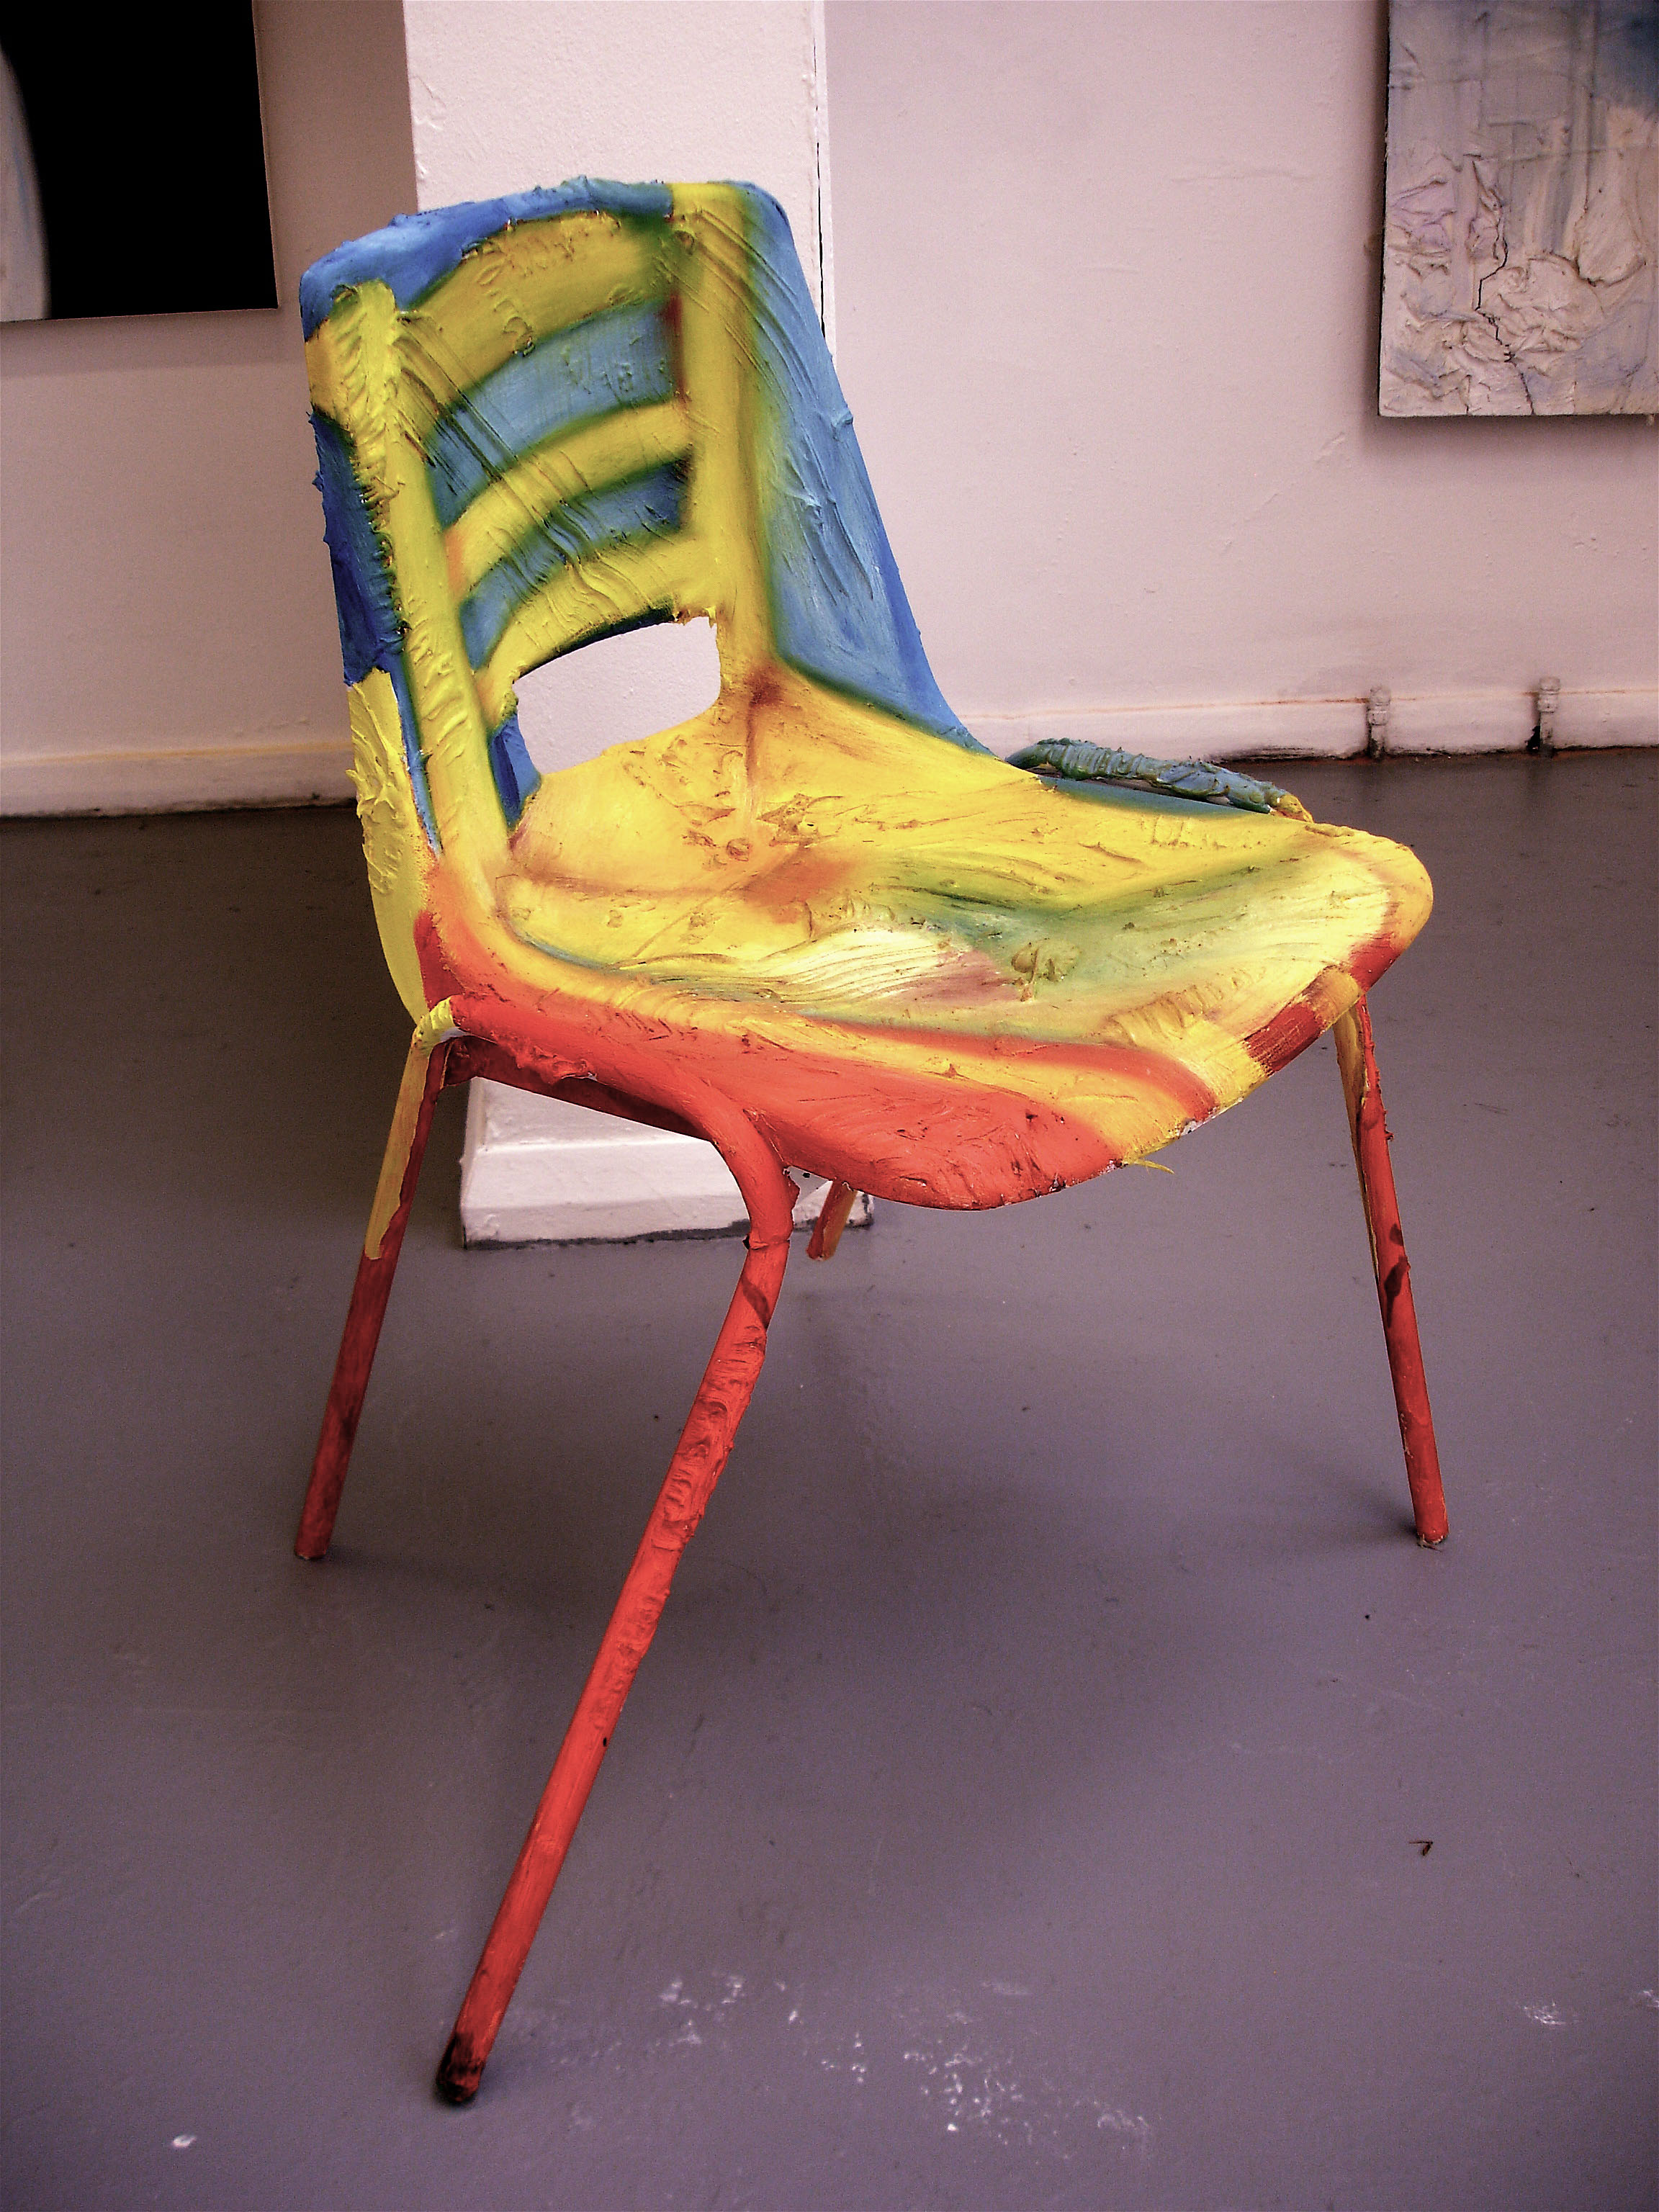 Broken Chair, 2007